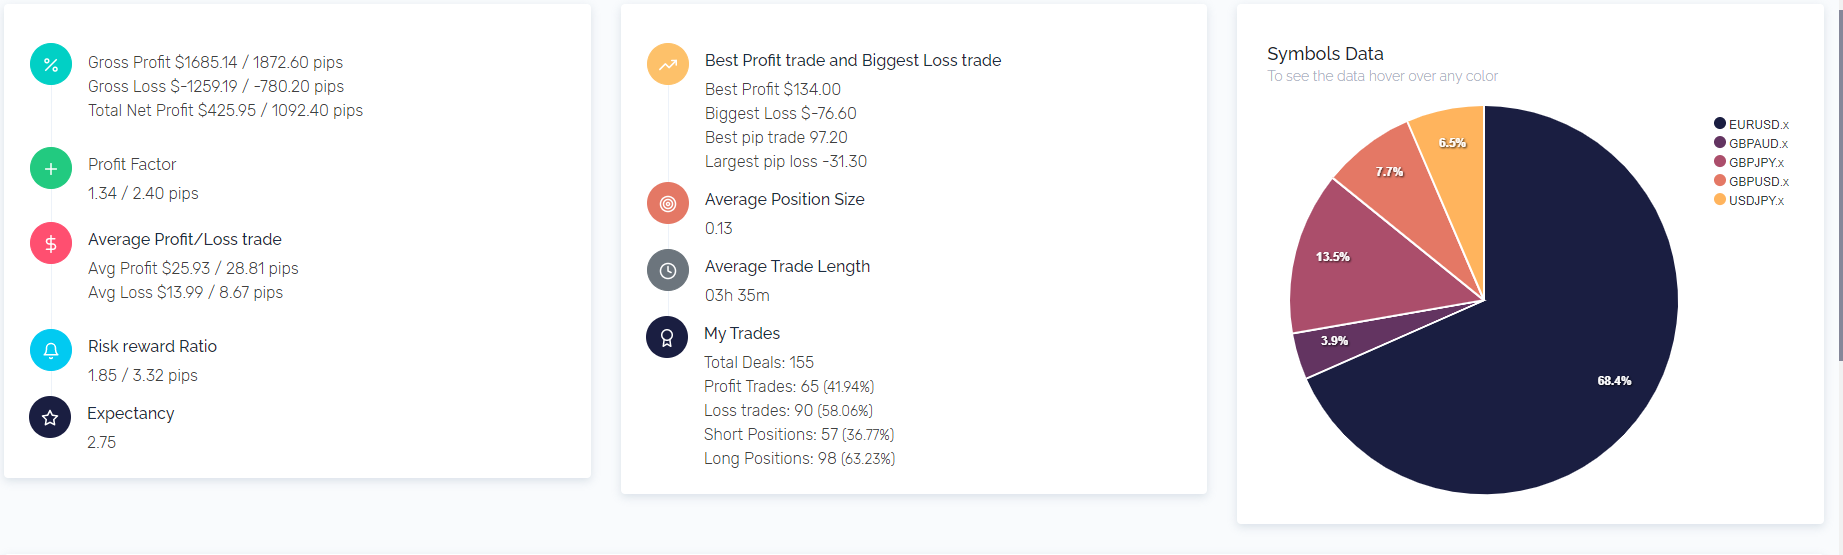 Passing 5ers Challenge in Roughly 2 Weeks Grew my Trading Confidence stats